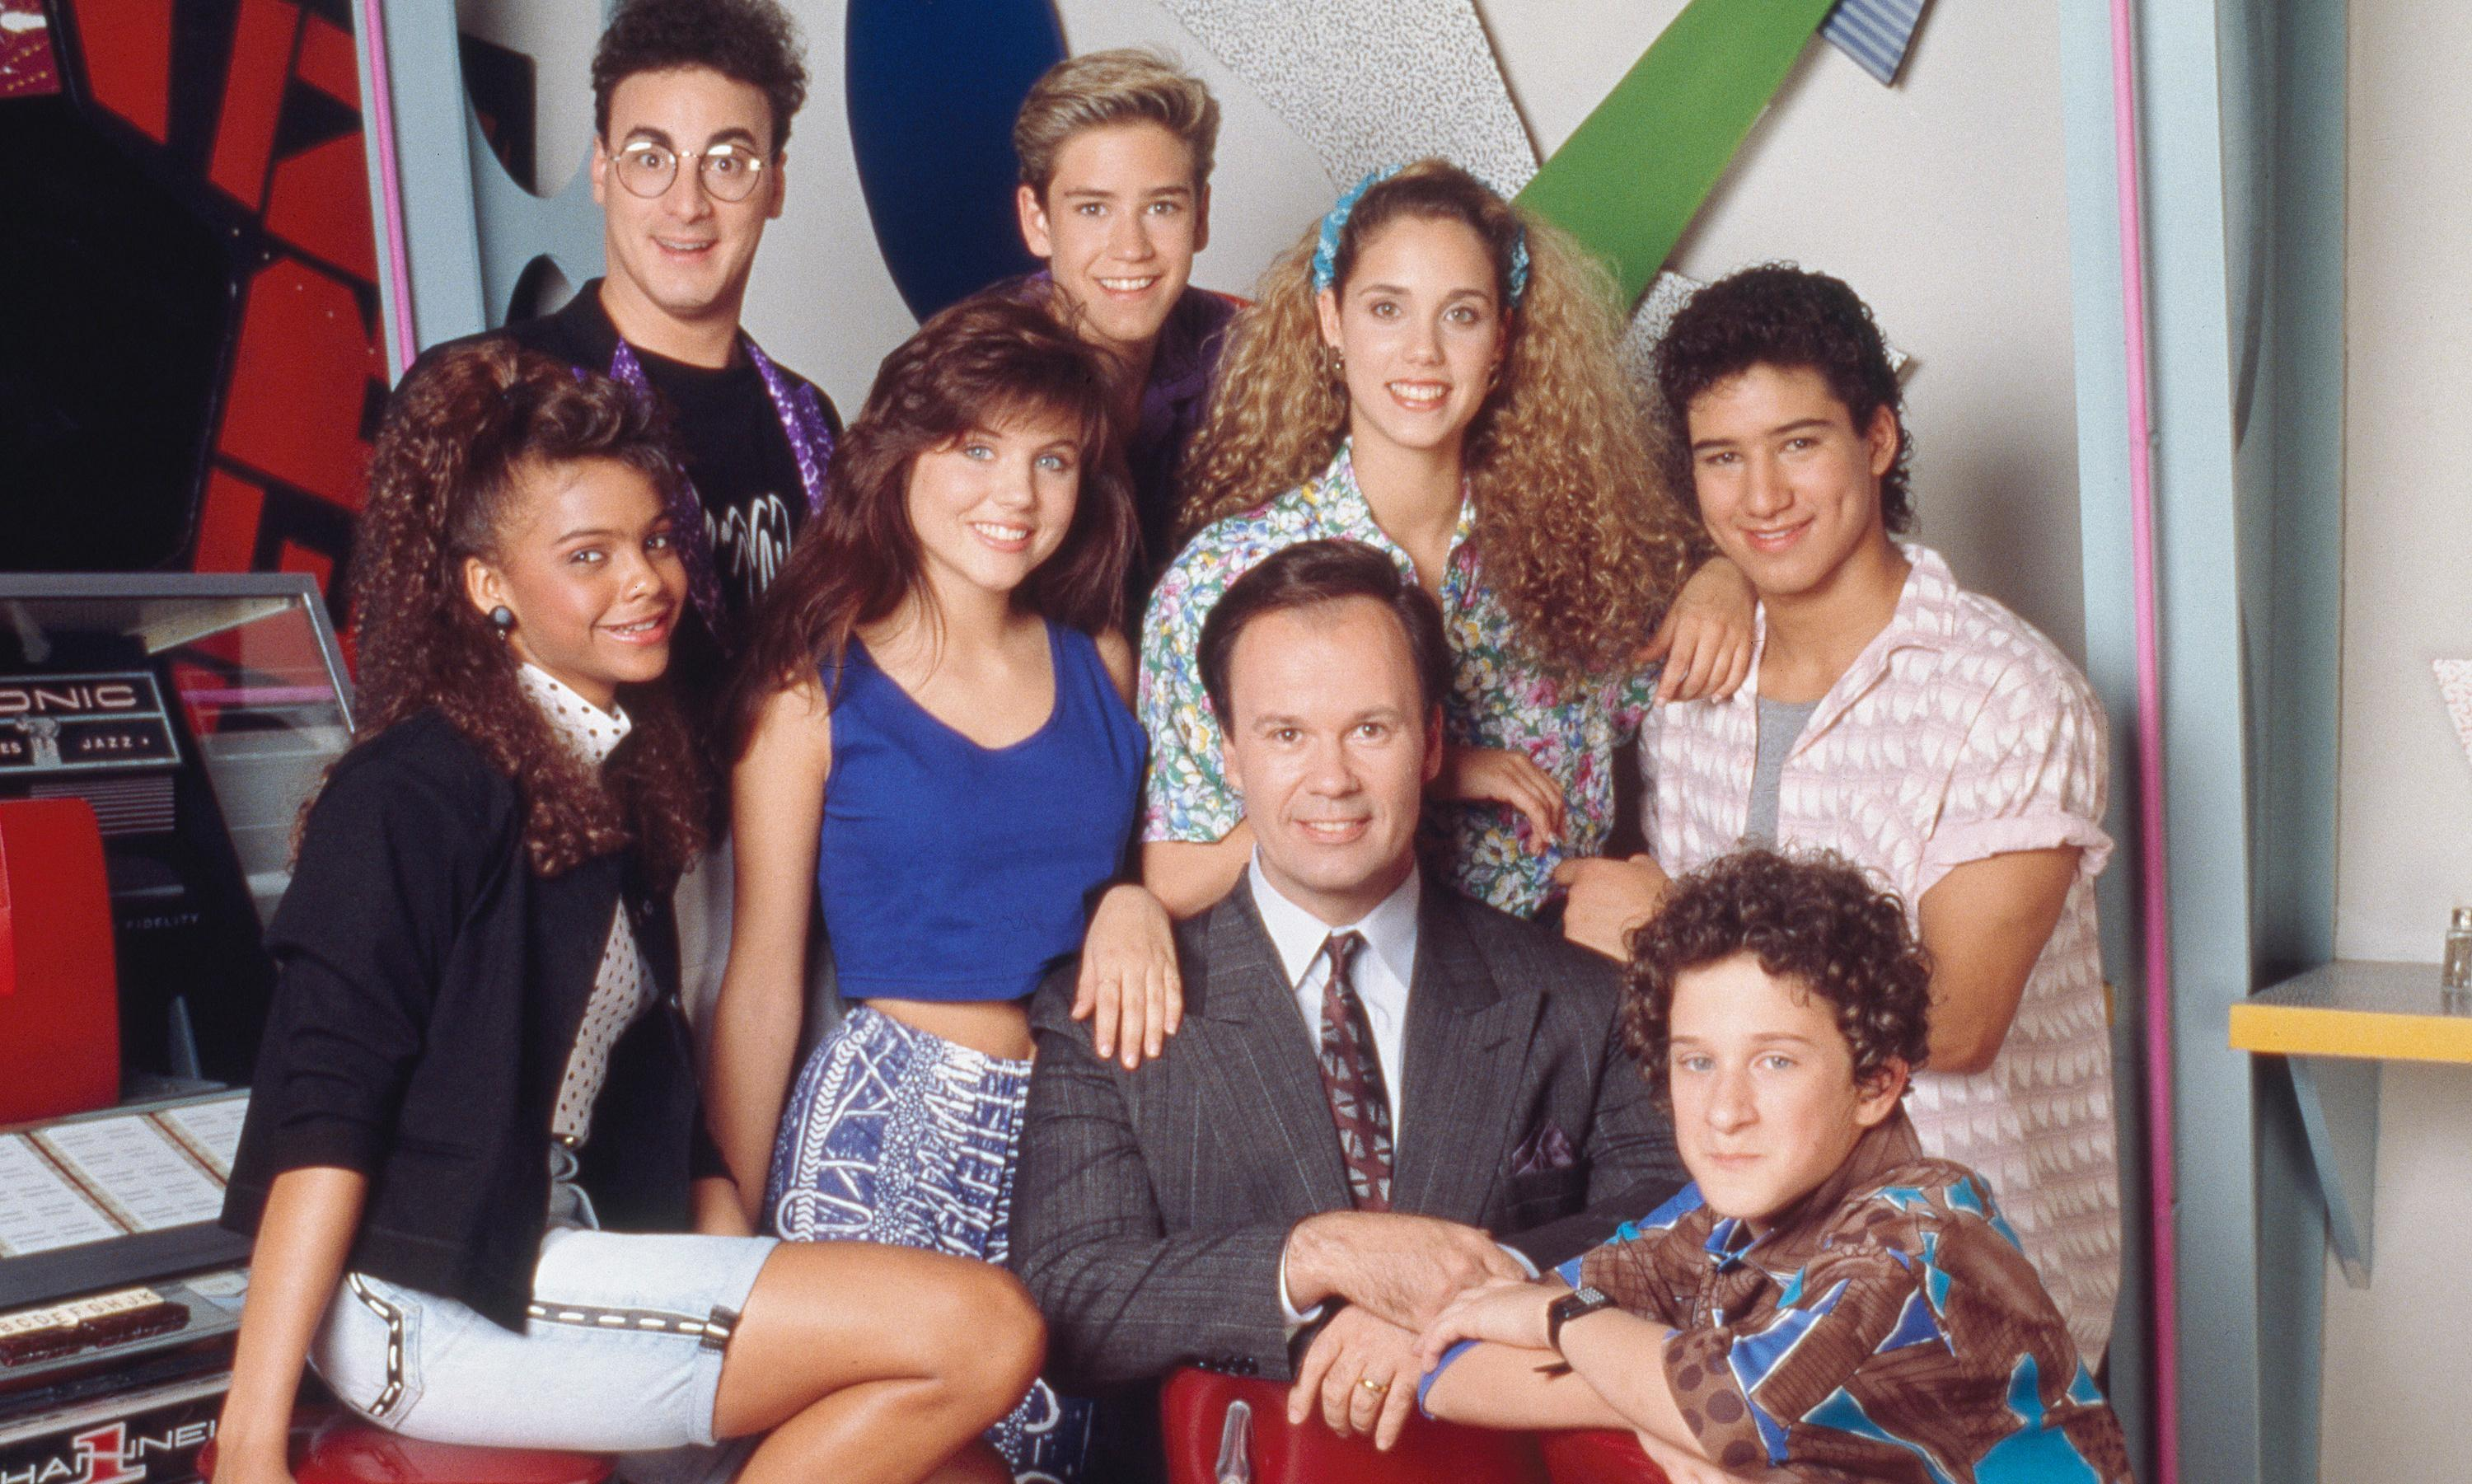 Saved by the Bell: will the revival be 2020's most depressing show?